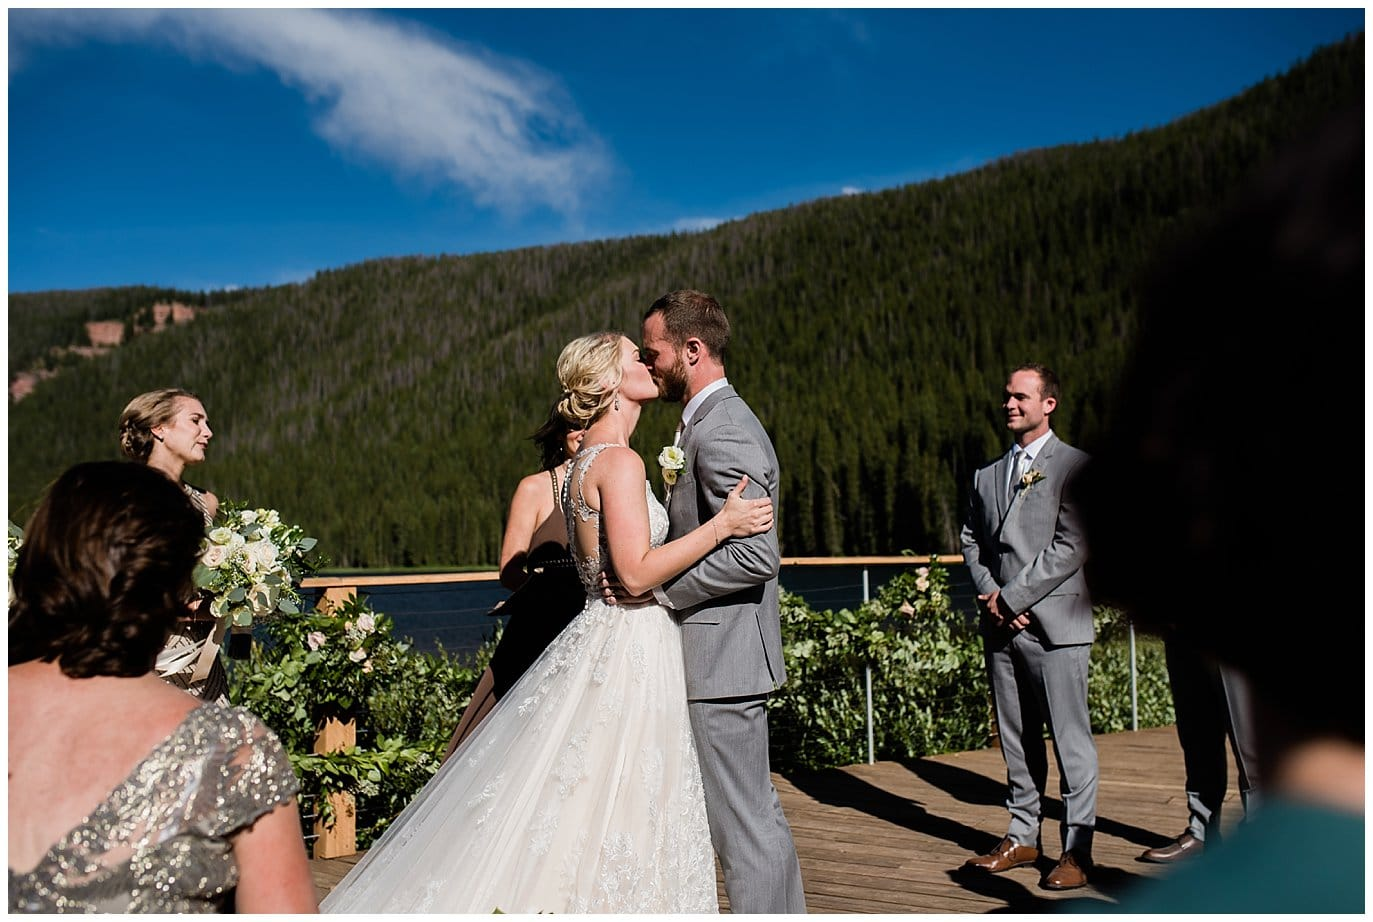 first kiss at Piney River Ranch wedding by Beaver Creek wedding photographer Jennie Crate, Photographer